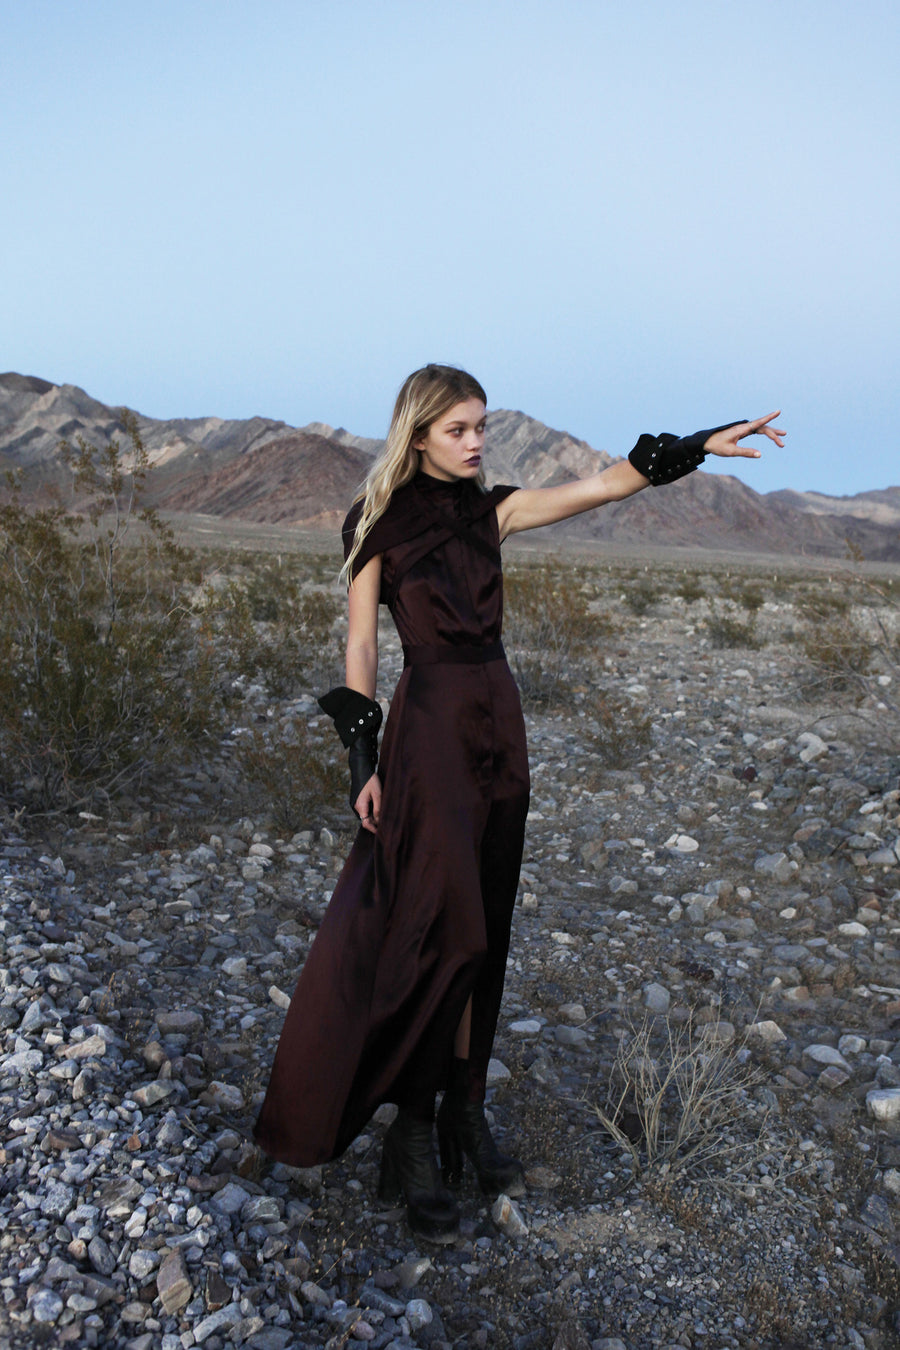 Maggie Laine IMG model Wendy Nichol New York Clothing Designer Handmade in NYC New York City SS17 Fashion Runway Show Signals to the Mothership Made to Order Custom Tailoring Made to Measure Death Valley Burgundy Ox Blood Maroon Silk Satin Charmeuse Hood Hooded Cross Tie Apron Sleeveless Dress button down Belle Beauty and the Beast Pagan Witch High Priestess Sorceress Single Finger Fingerless Leather Gloves